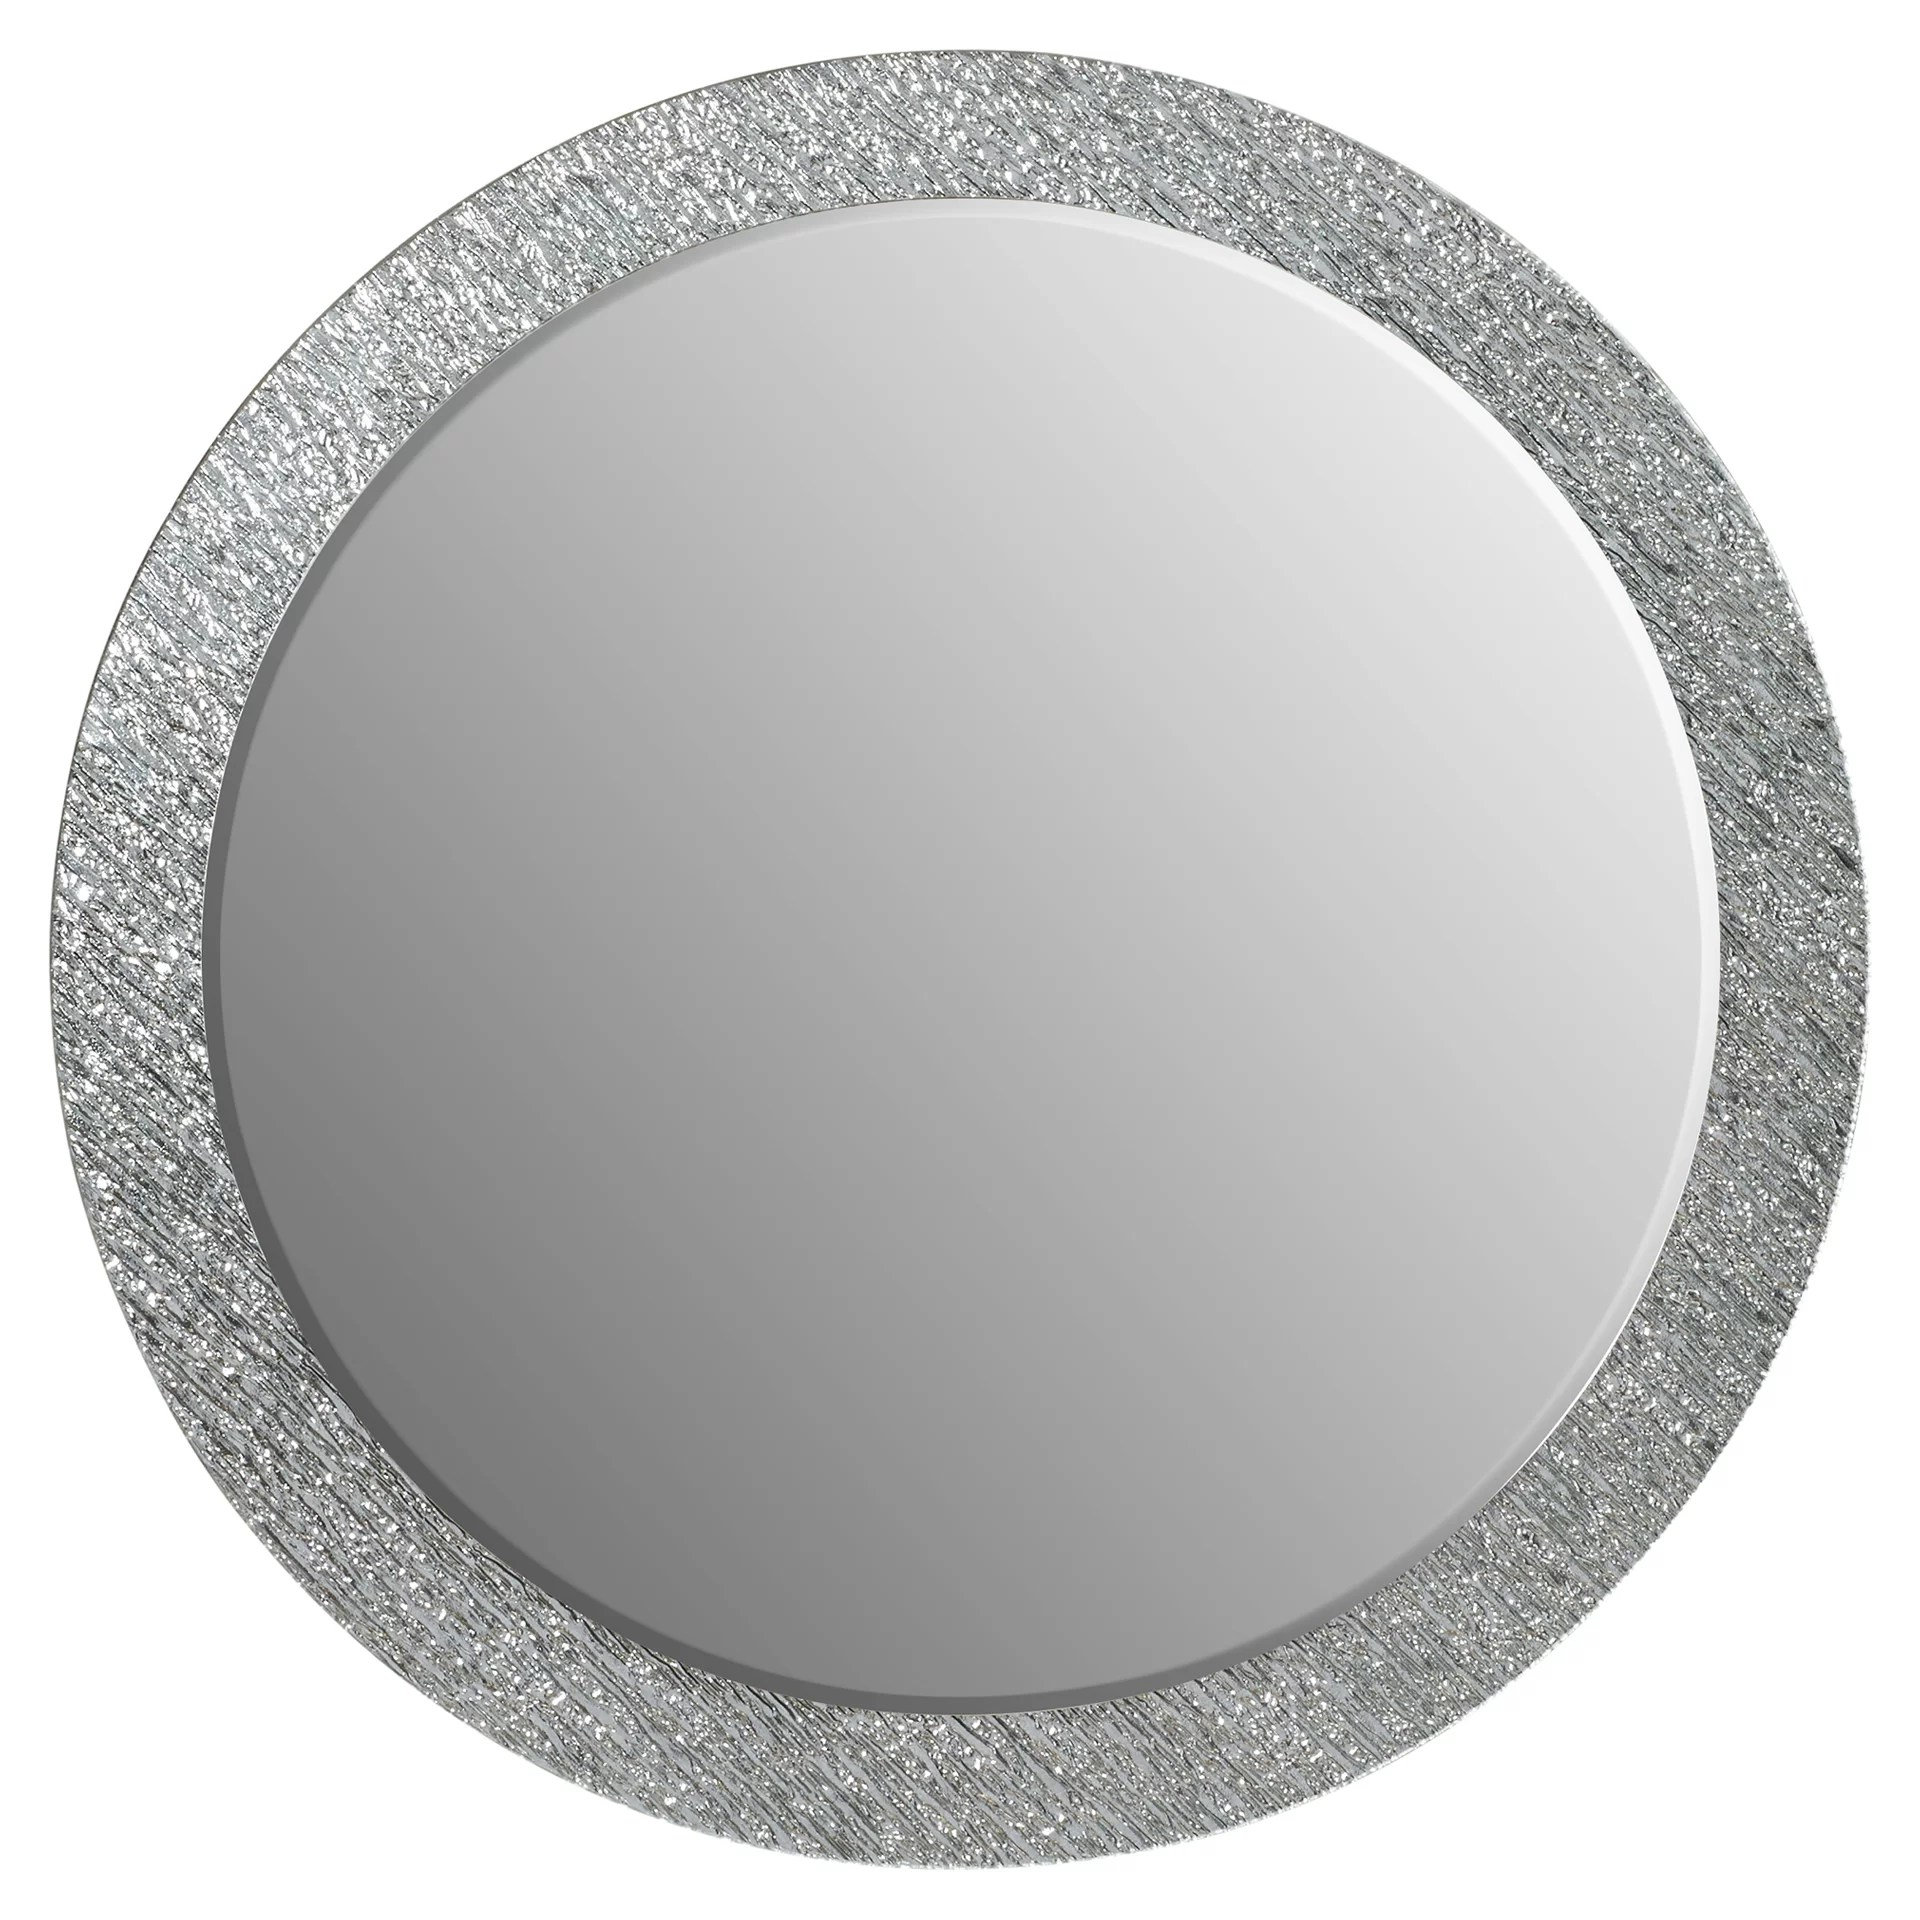 Gallant Light Point Rs Molten Round Wall Mirror Round Wall Mirror Target Round Wall Mirror houzz-03 Round Wall Mirror